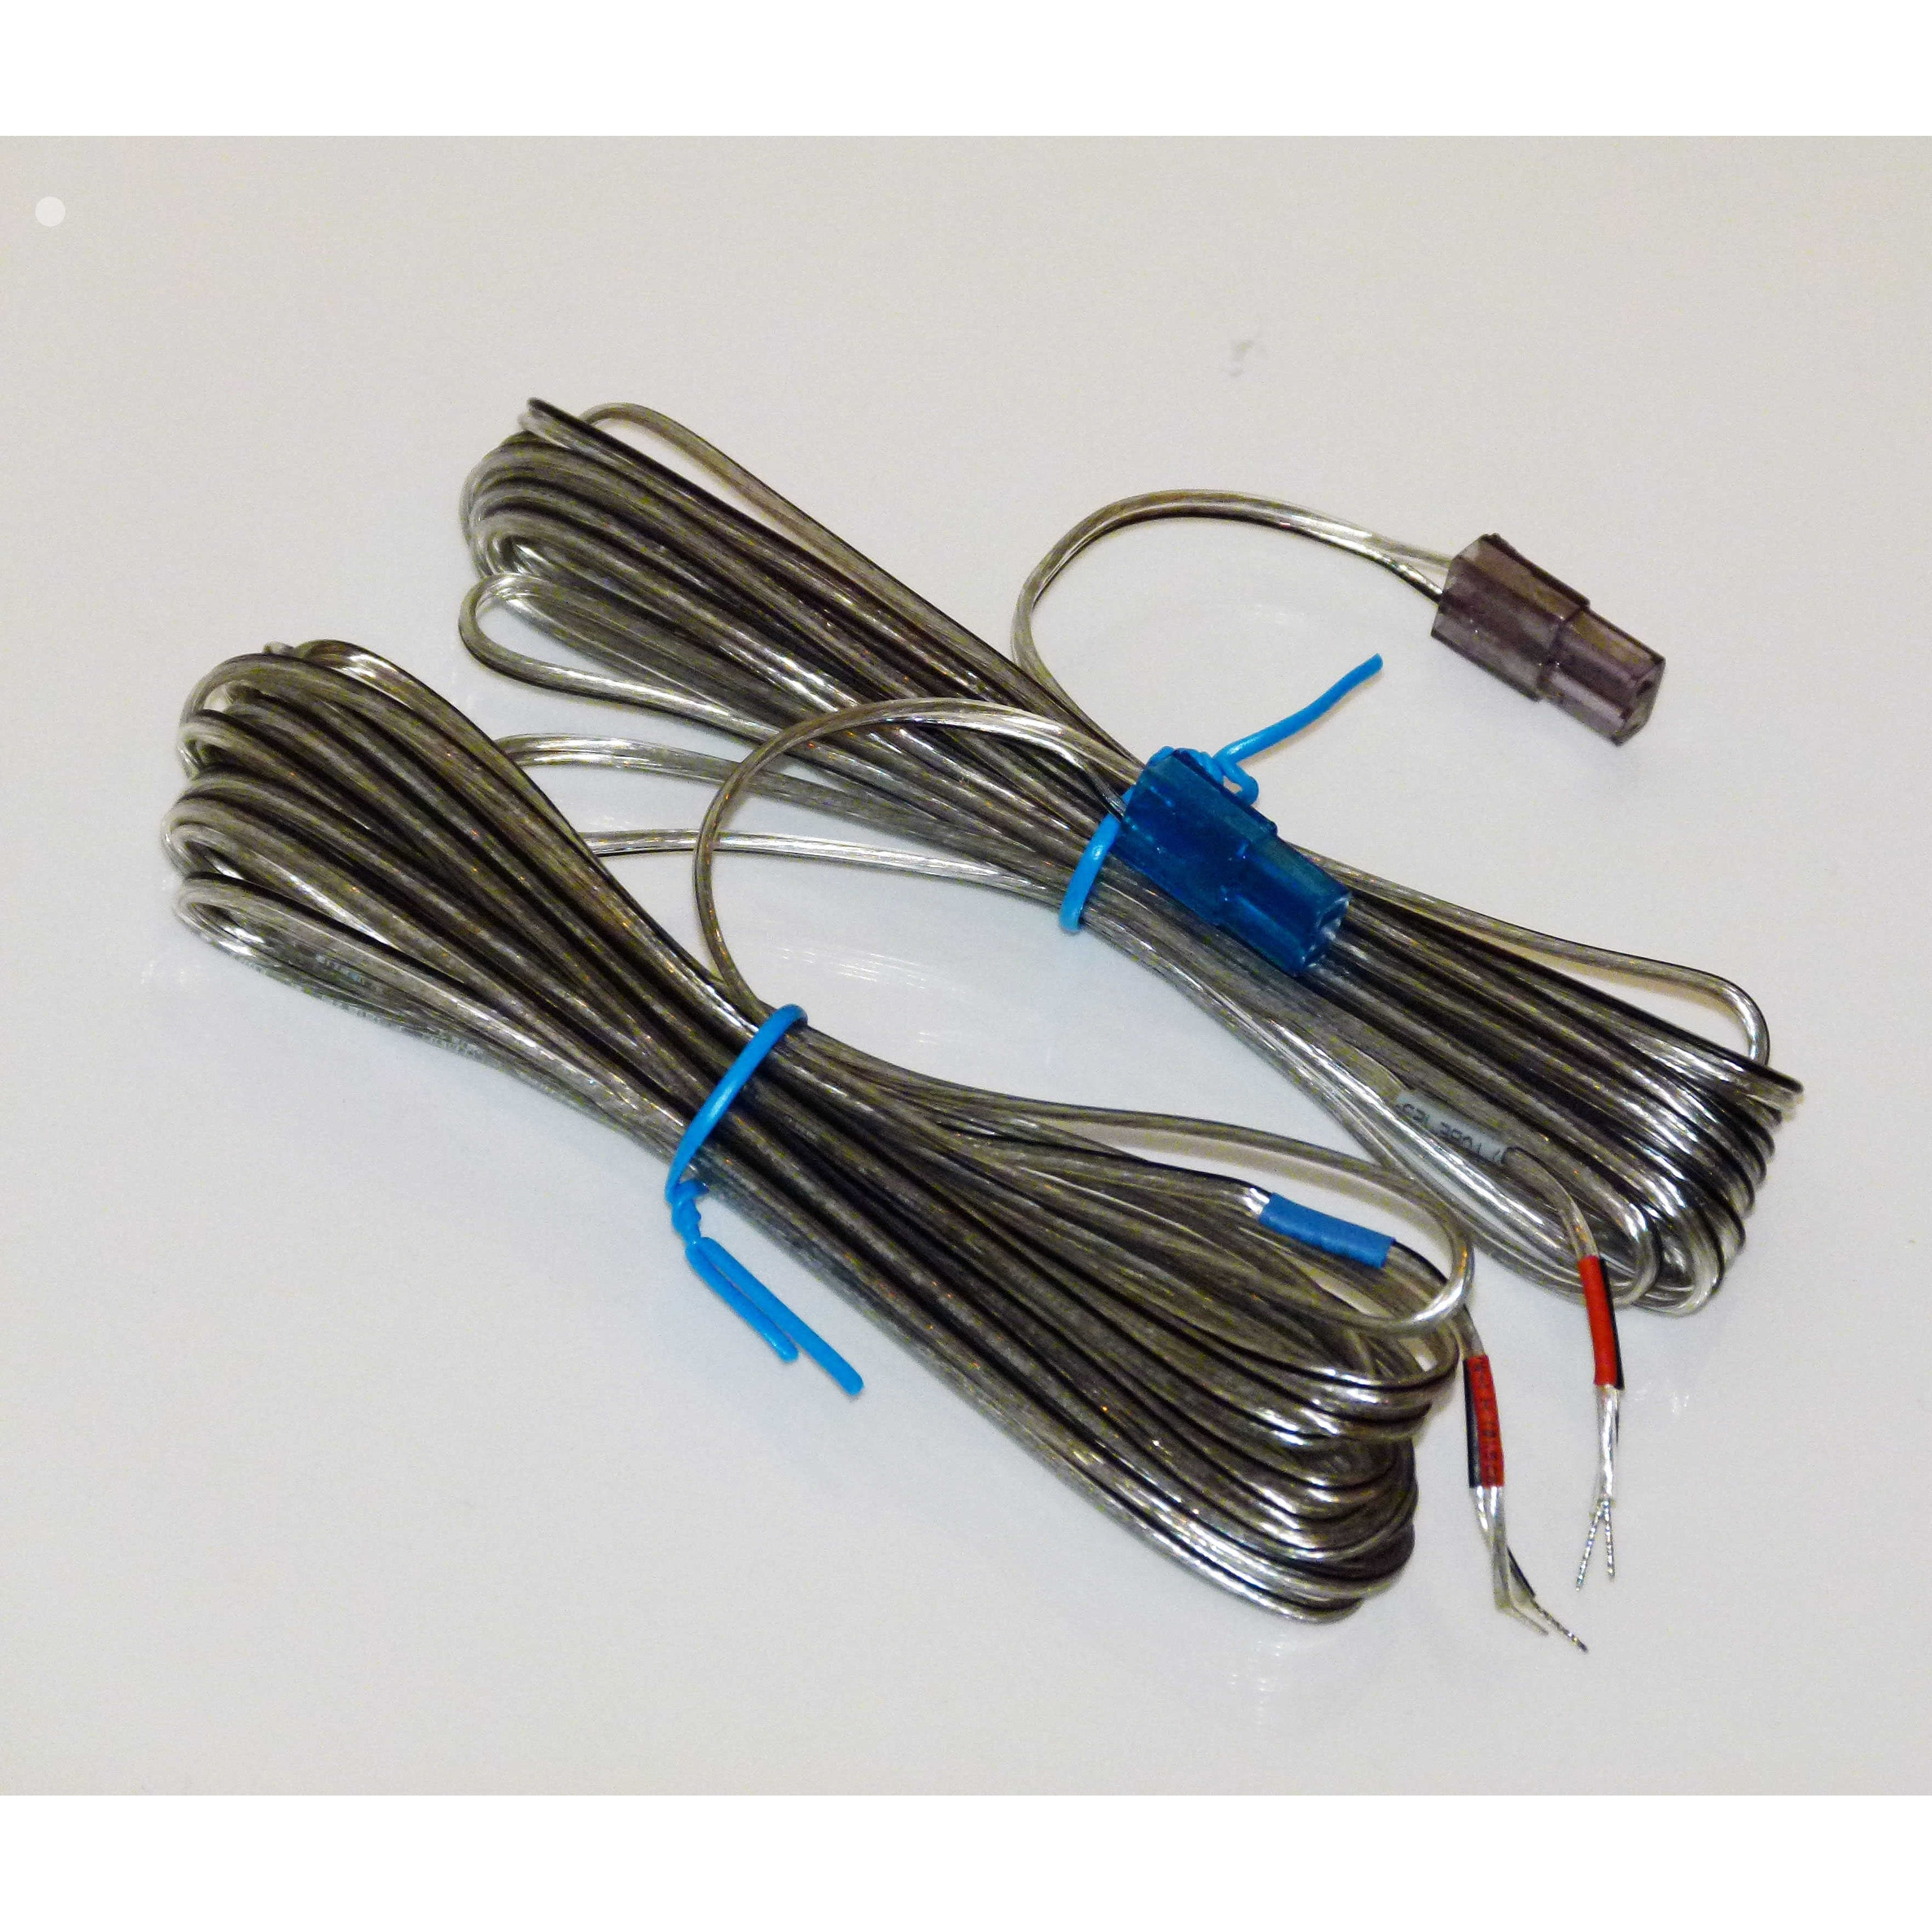 Shop Samsung Speaker Wire Originally Shipped With: SWA3000, SWA-3000 ...